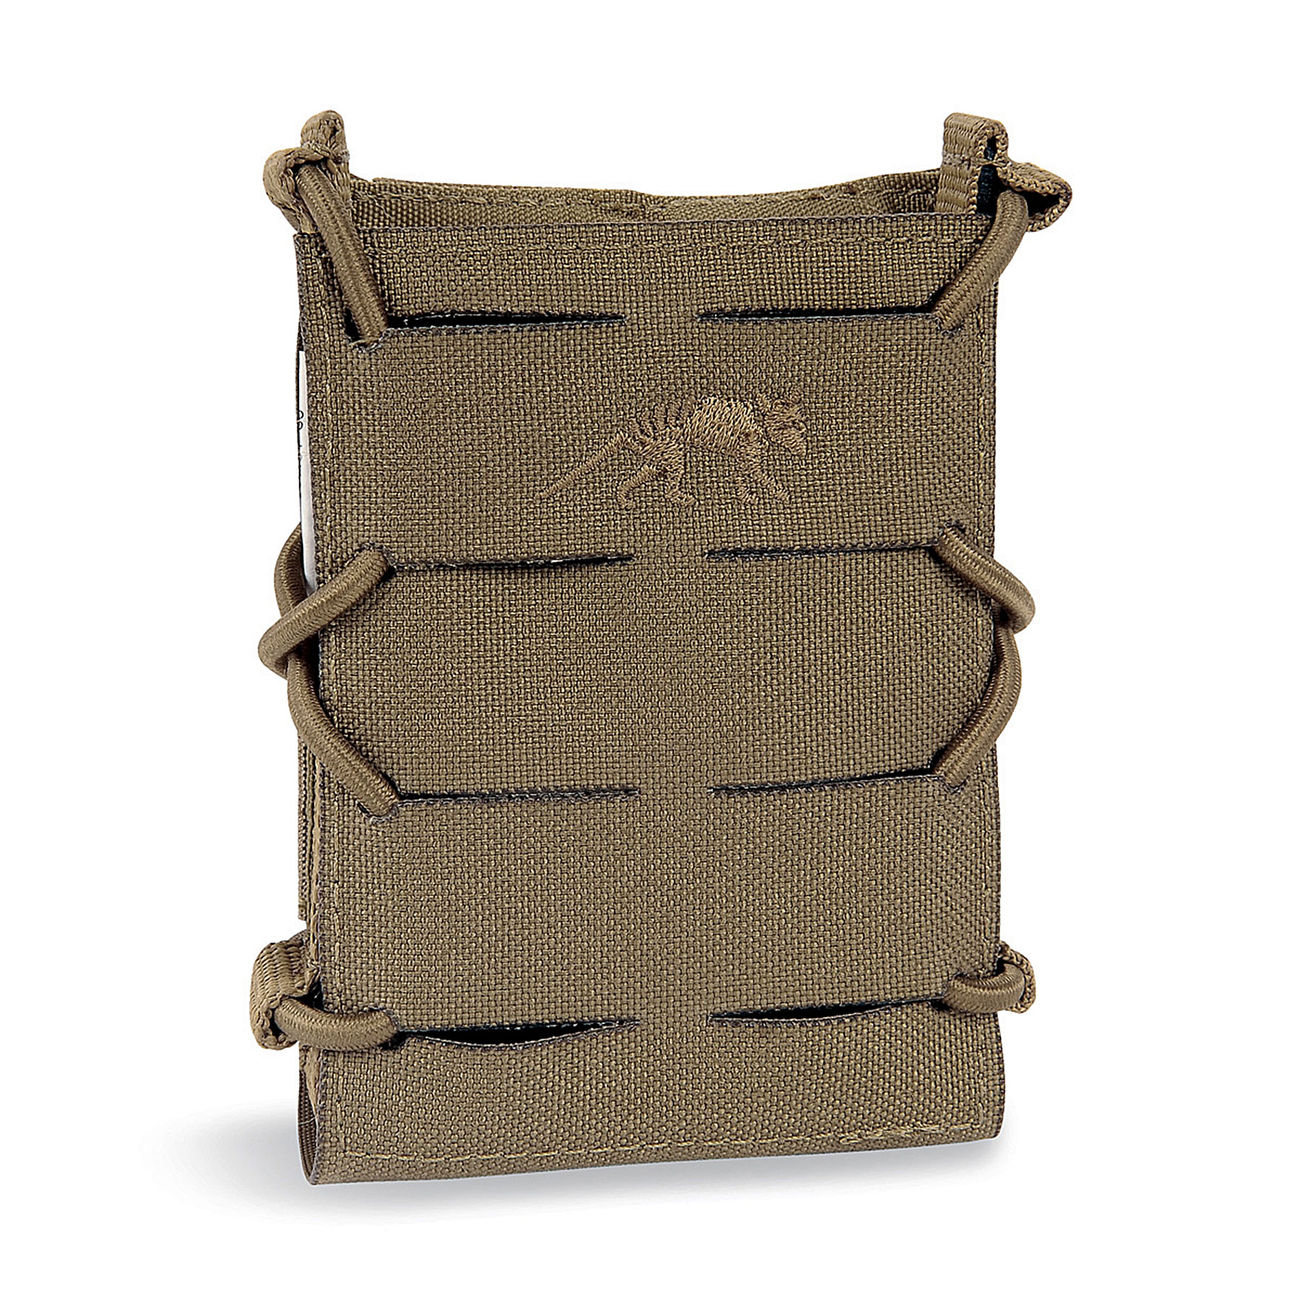 TT Magazintasche SGL Mag Pouch MCL coyote brown 0